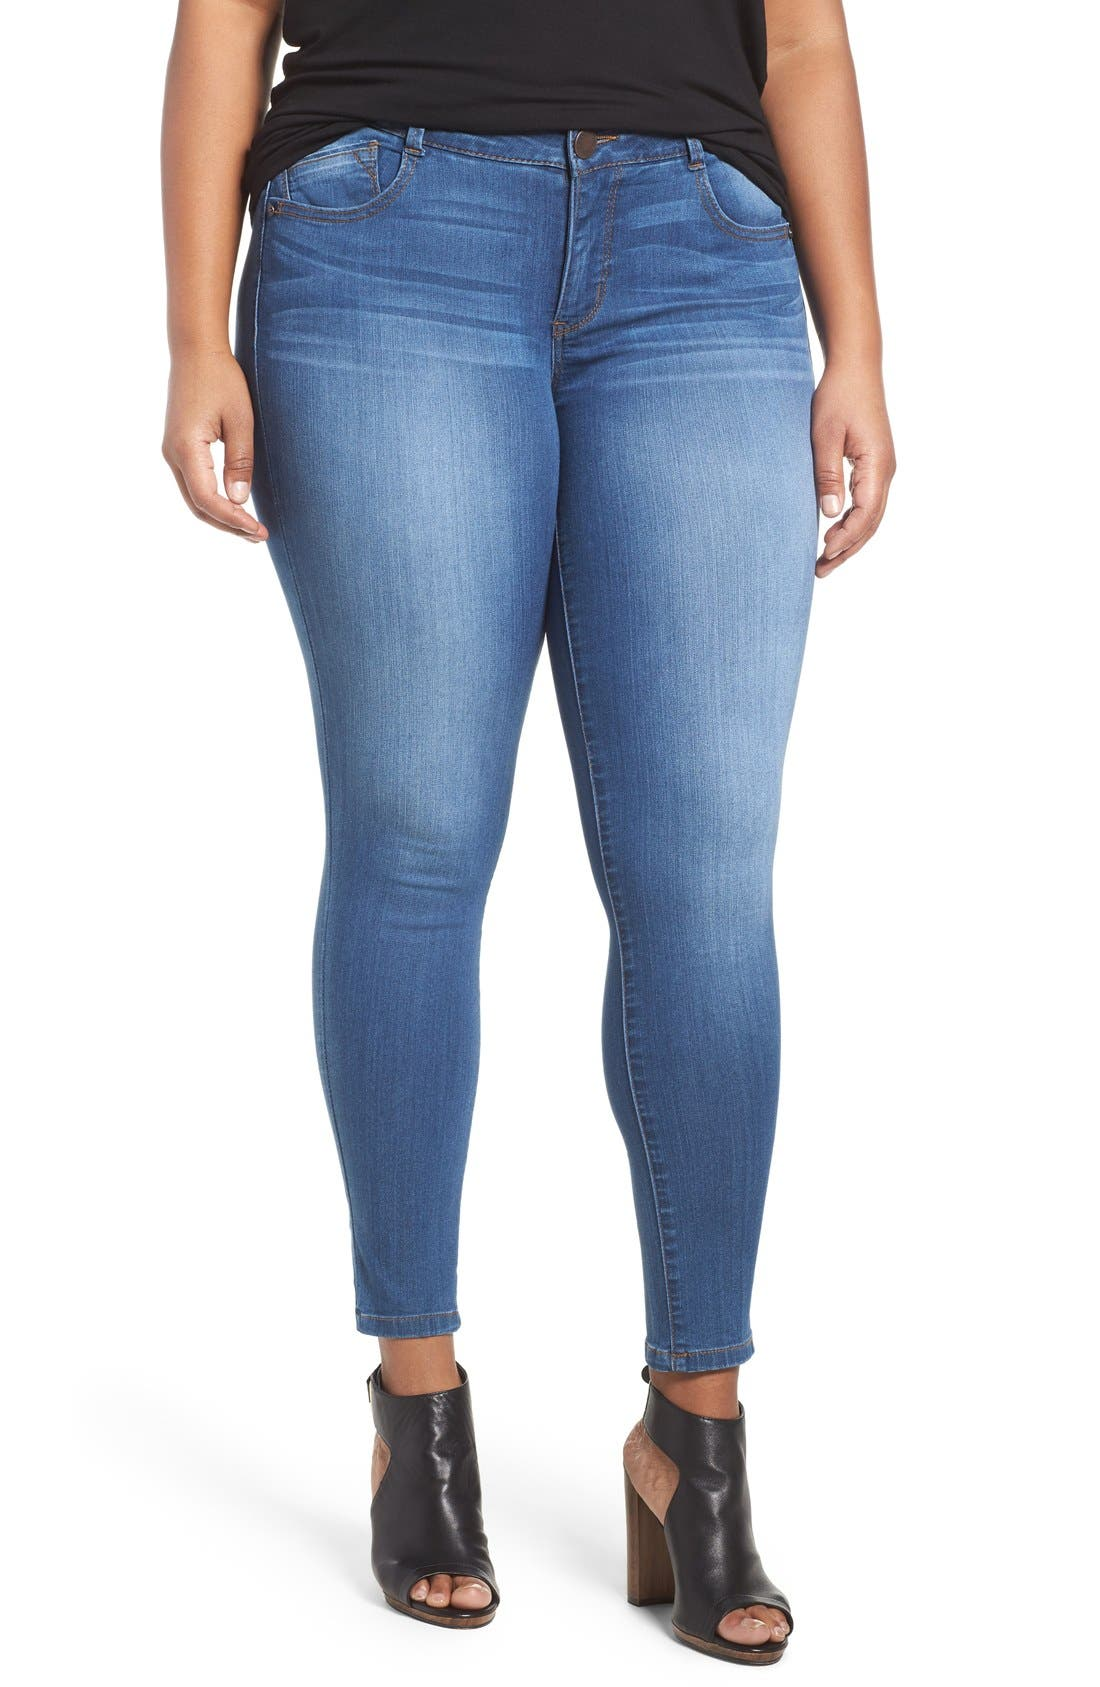 Main Image - Wit & Wisdom Ab-solution Stretch Skinny Jeans (Plus Size) (Nordstrom Exclusive)